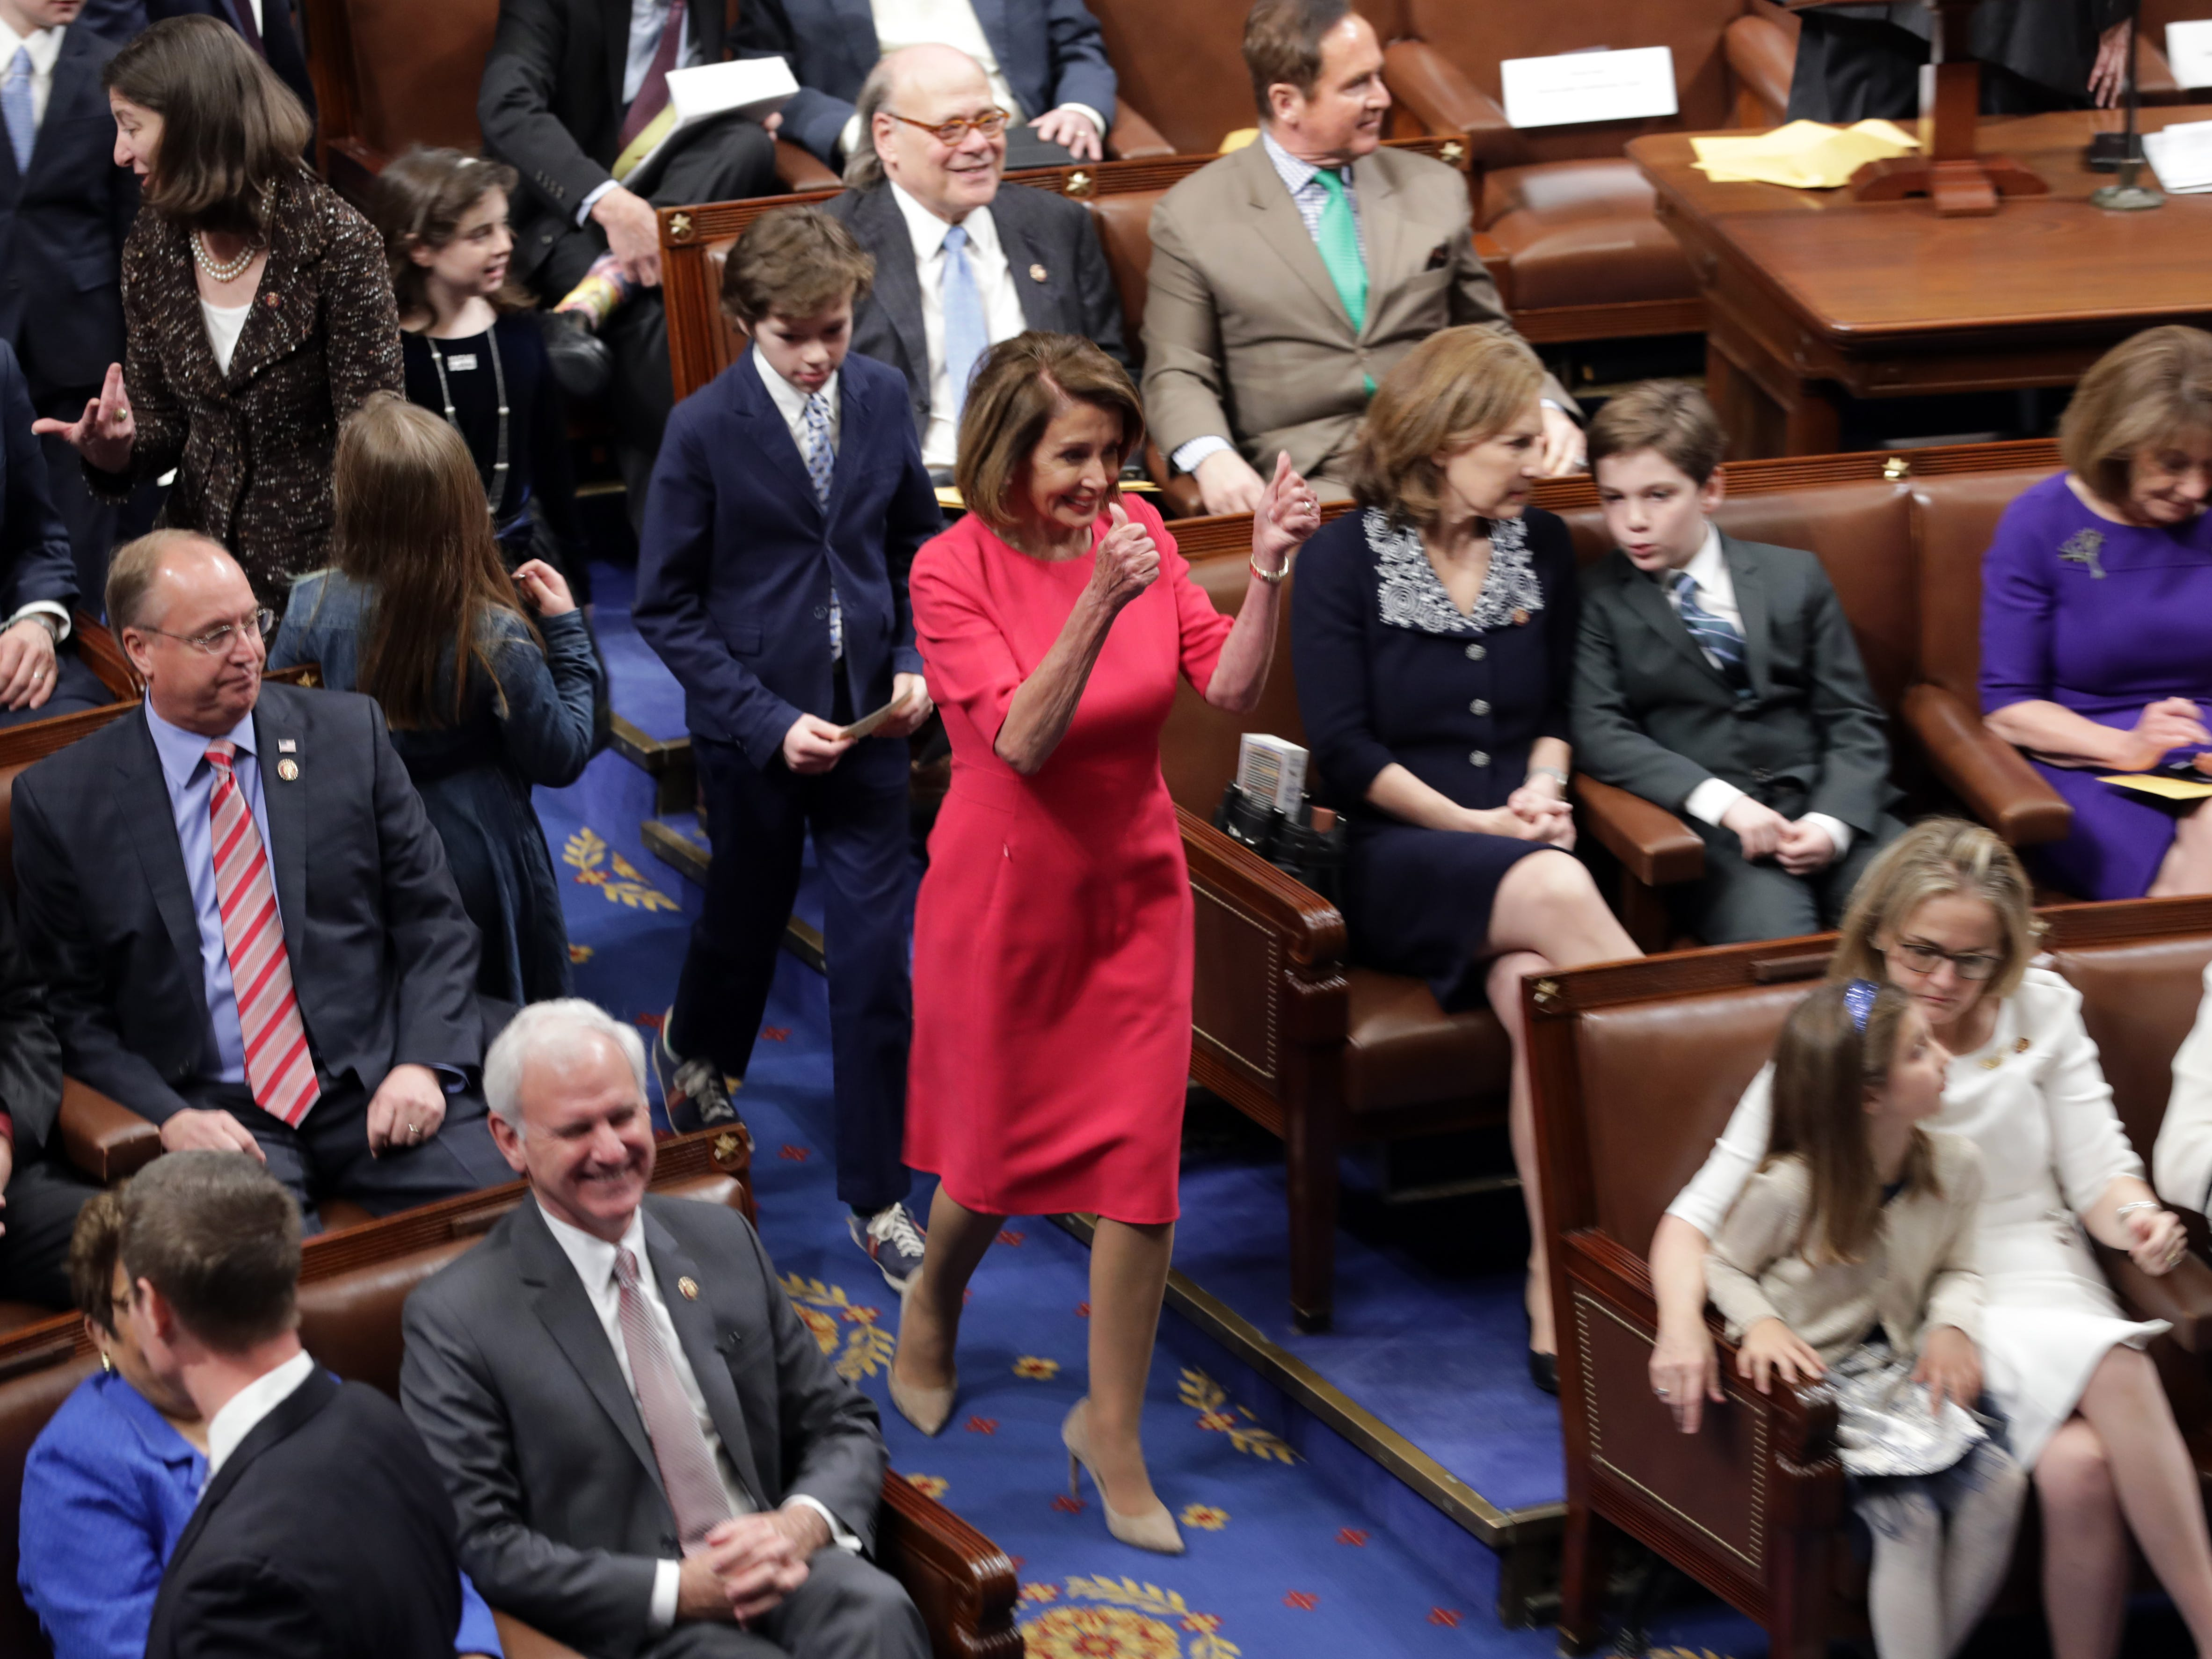 WASHINGTON, DC - JANUARY 3: Speaker-designate Rep. Nancy Pelosi (D-CA) enters the chamber during the first session of the 116th Congress at the U.S. Capitol January 03, 2019 in Washington, DC. Under the cloud of a partial federal government shutdown, Pelosi will reclaim her former title as Speaker of the House and her fellow Democrats will take control of the House of Representatives for the second time in eight years. (Photo by Chip Somodevilla/Getty Images) ORG XMIT: 775276804 ORIG FILE ID: 1076634866